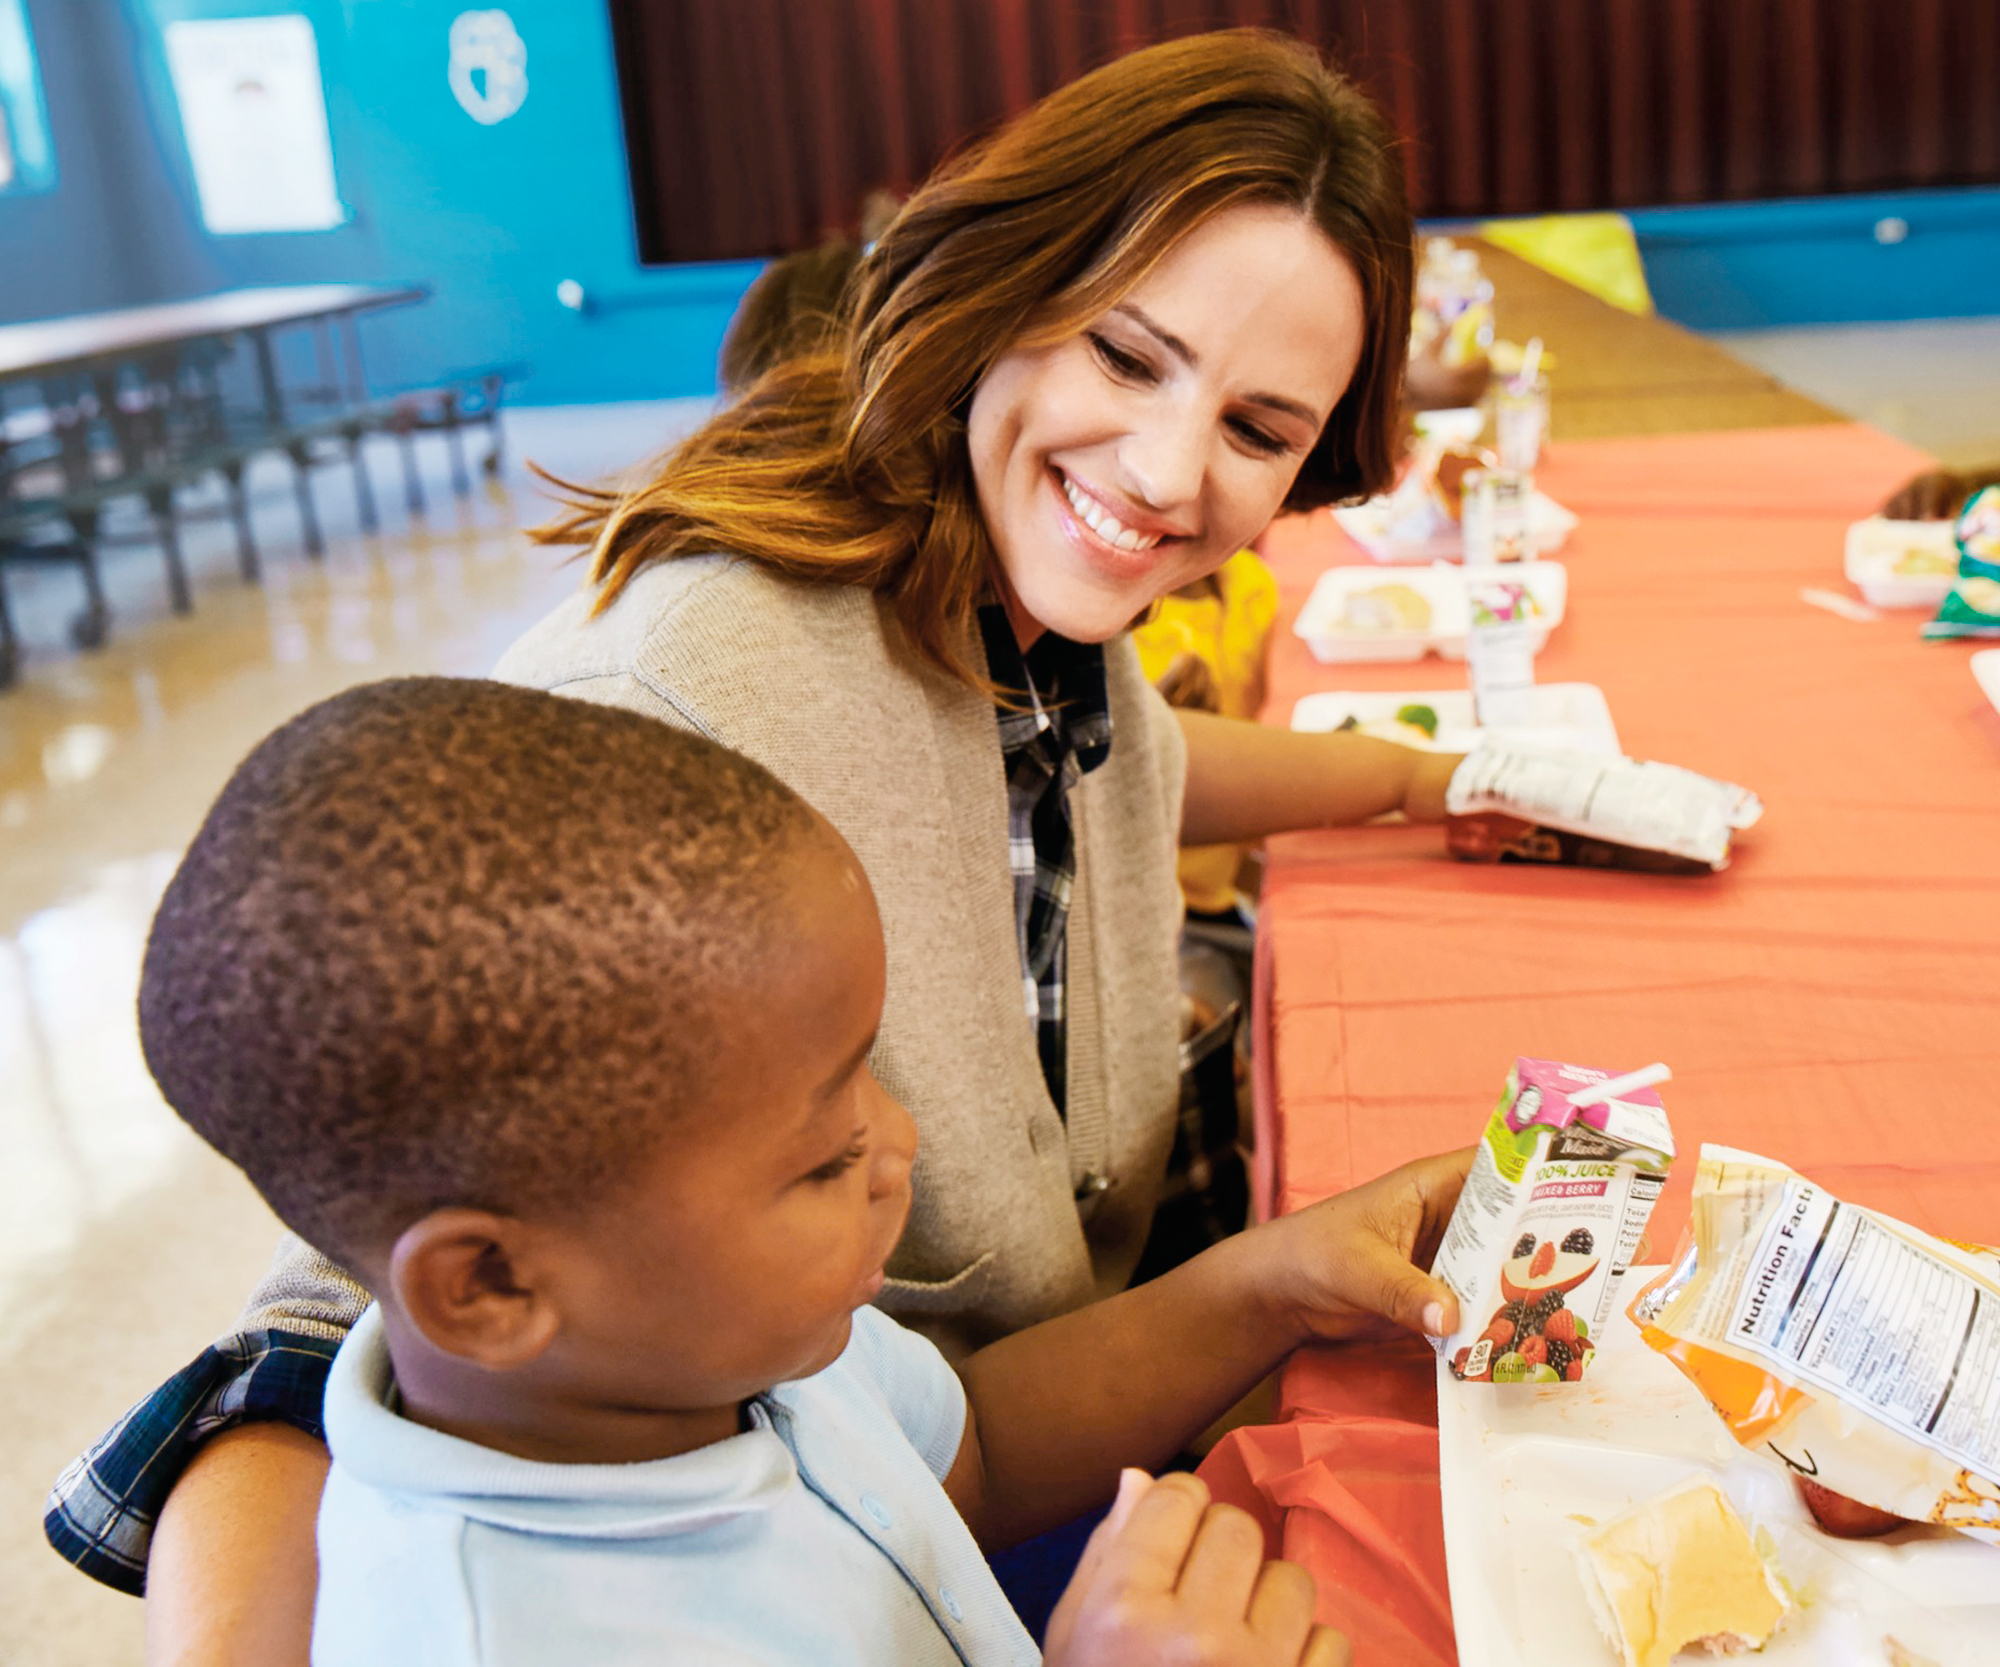 This Jennifer Garner Story Will Make You Love Her Even More